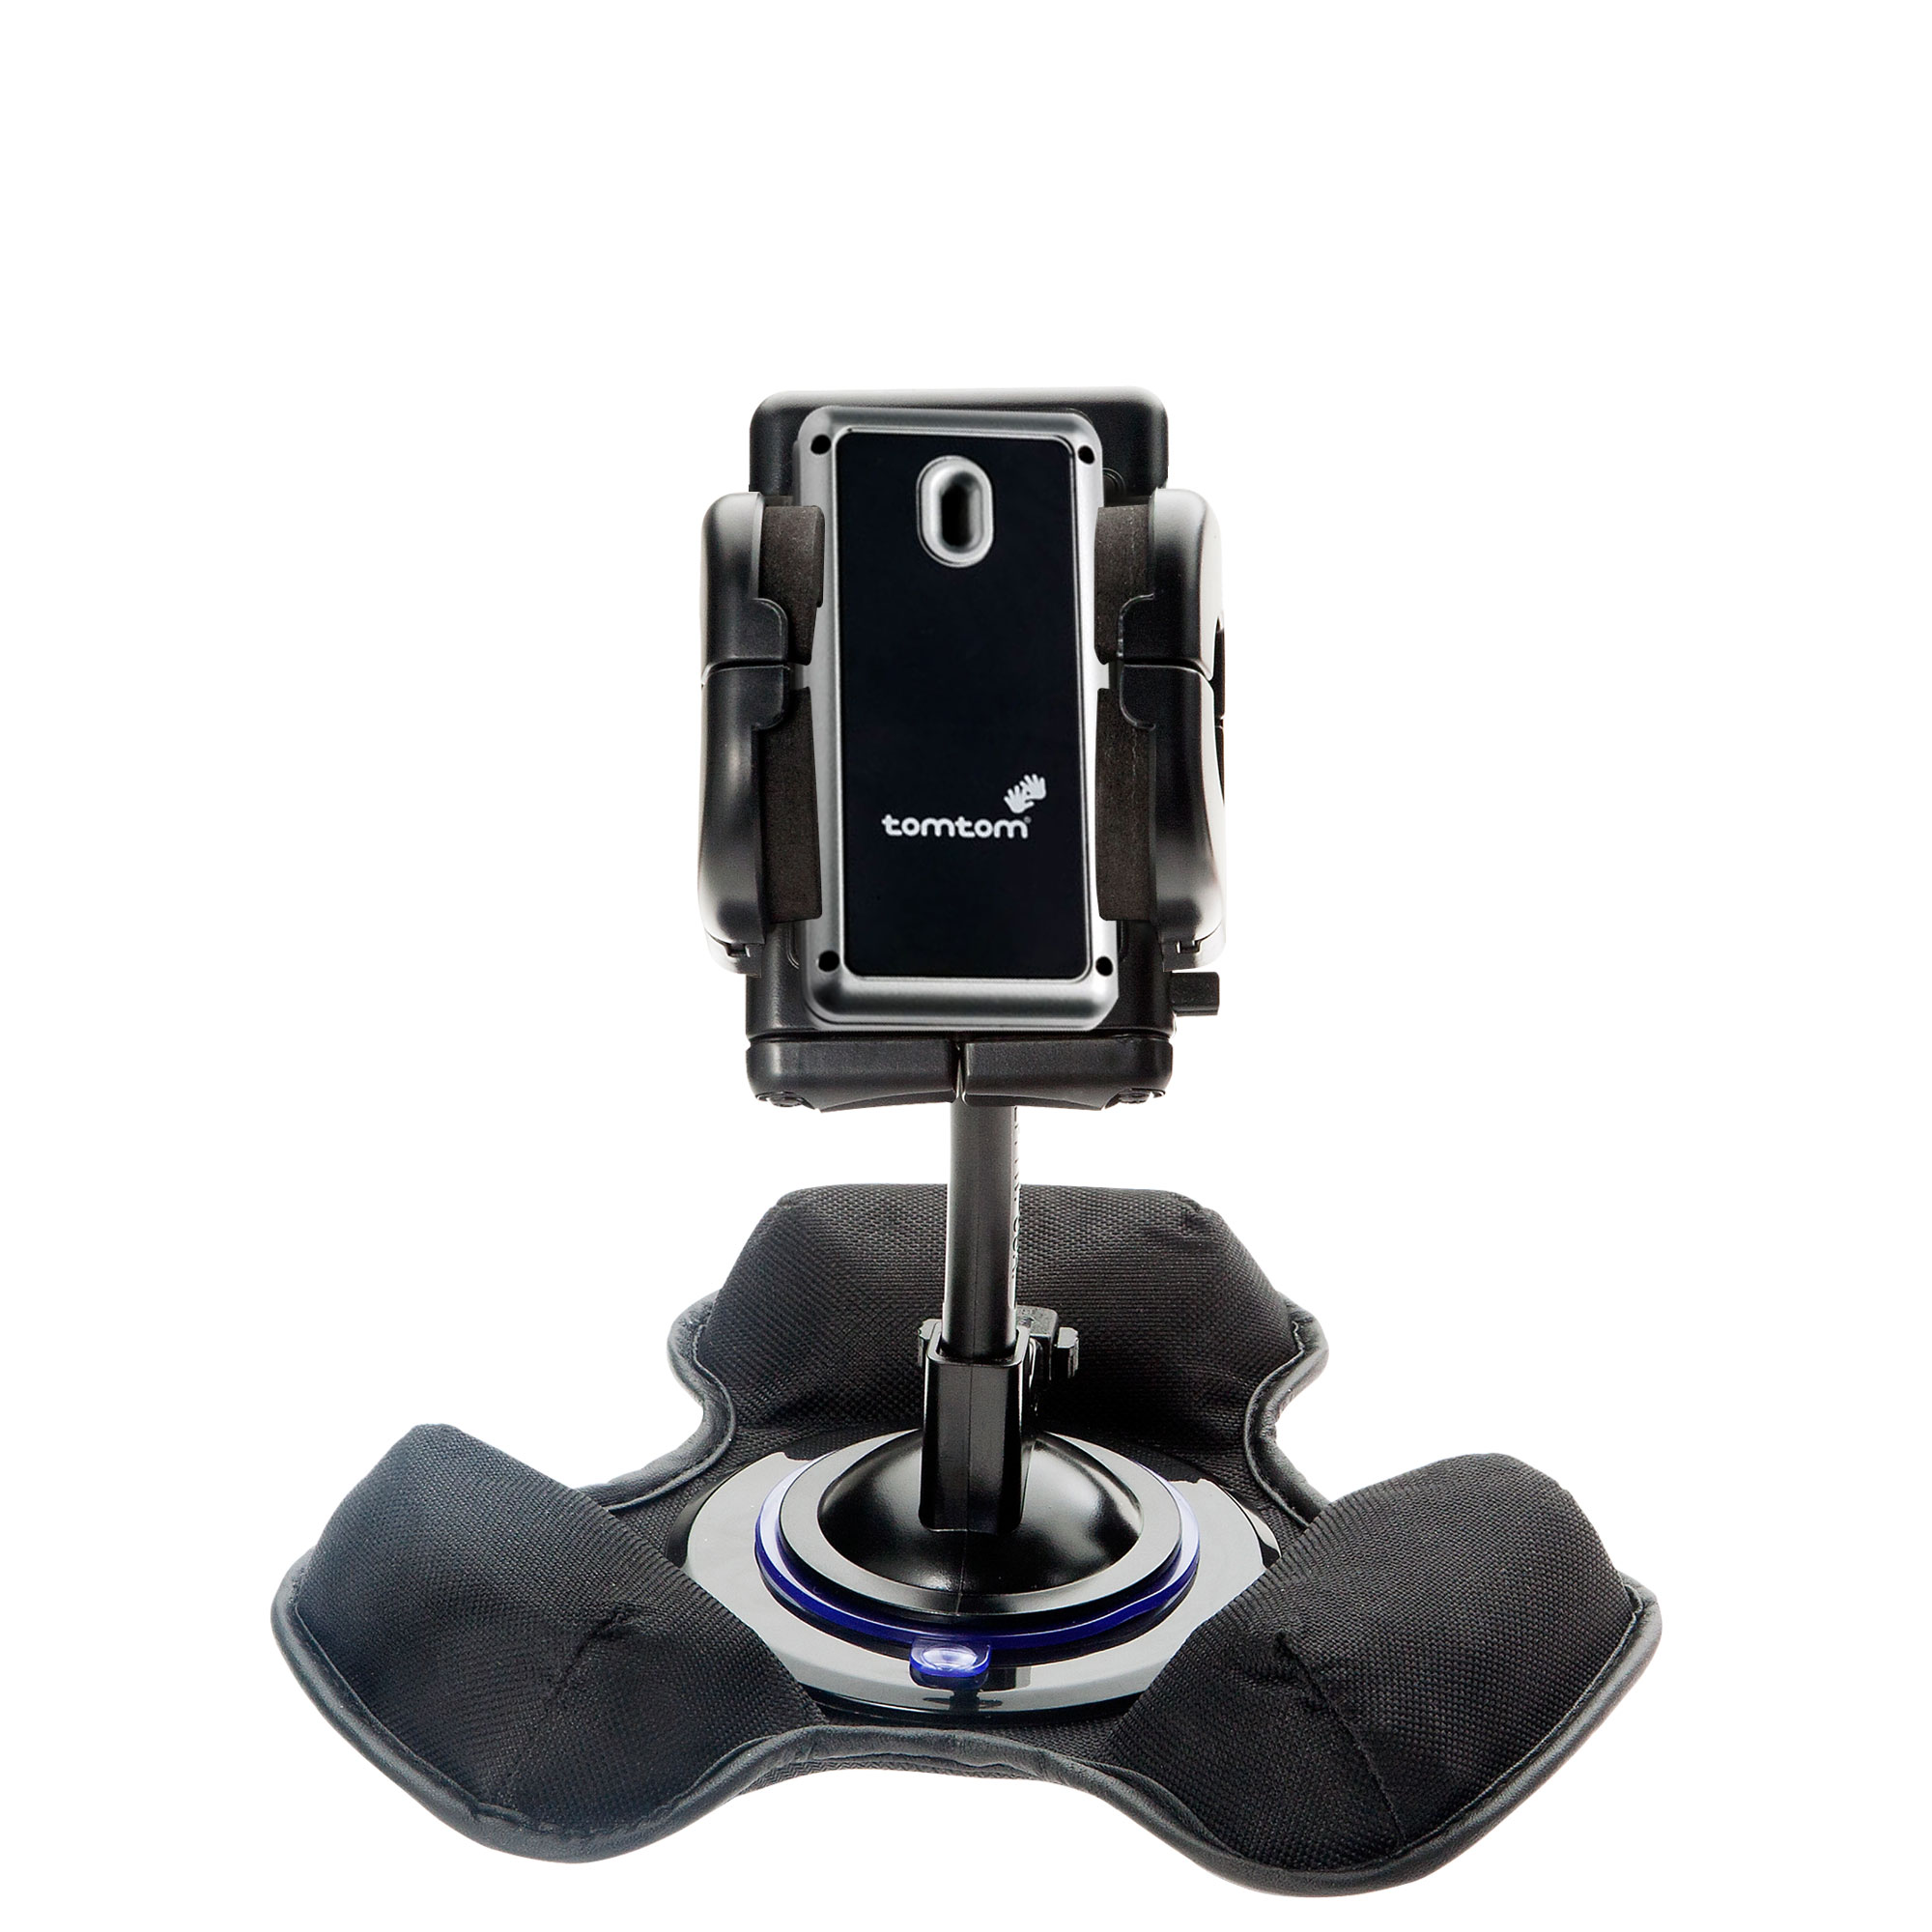 Dash and Windshield Holder compatible with the TomTom Navigator 5